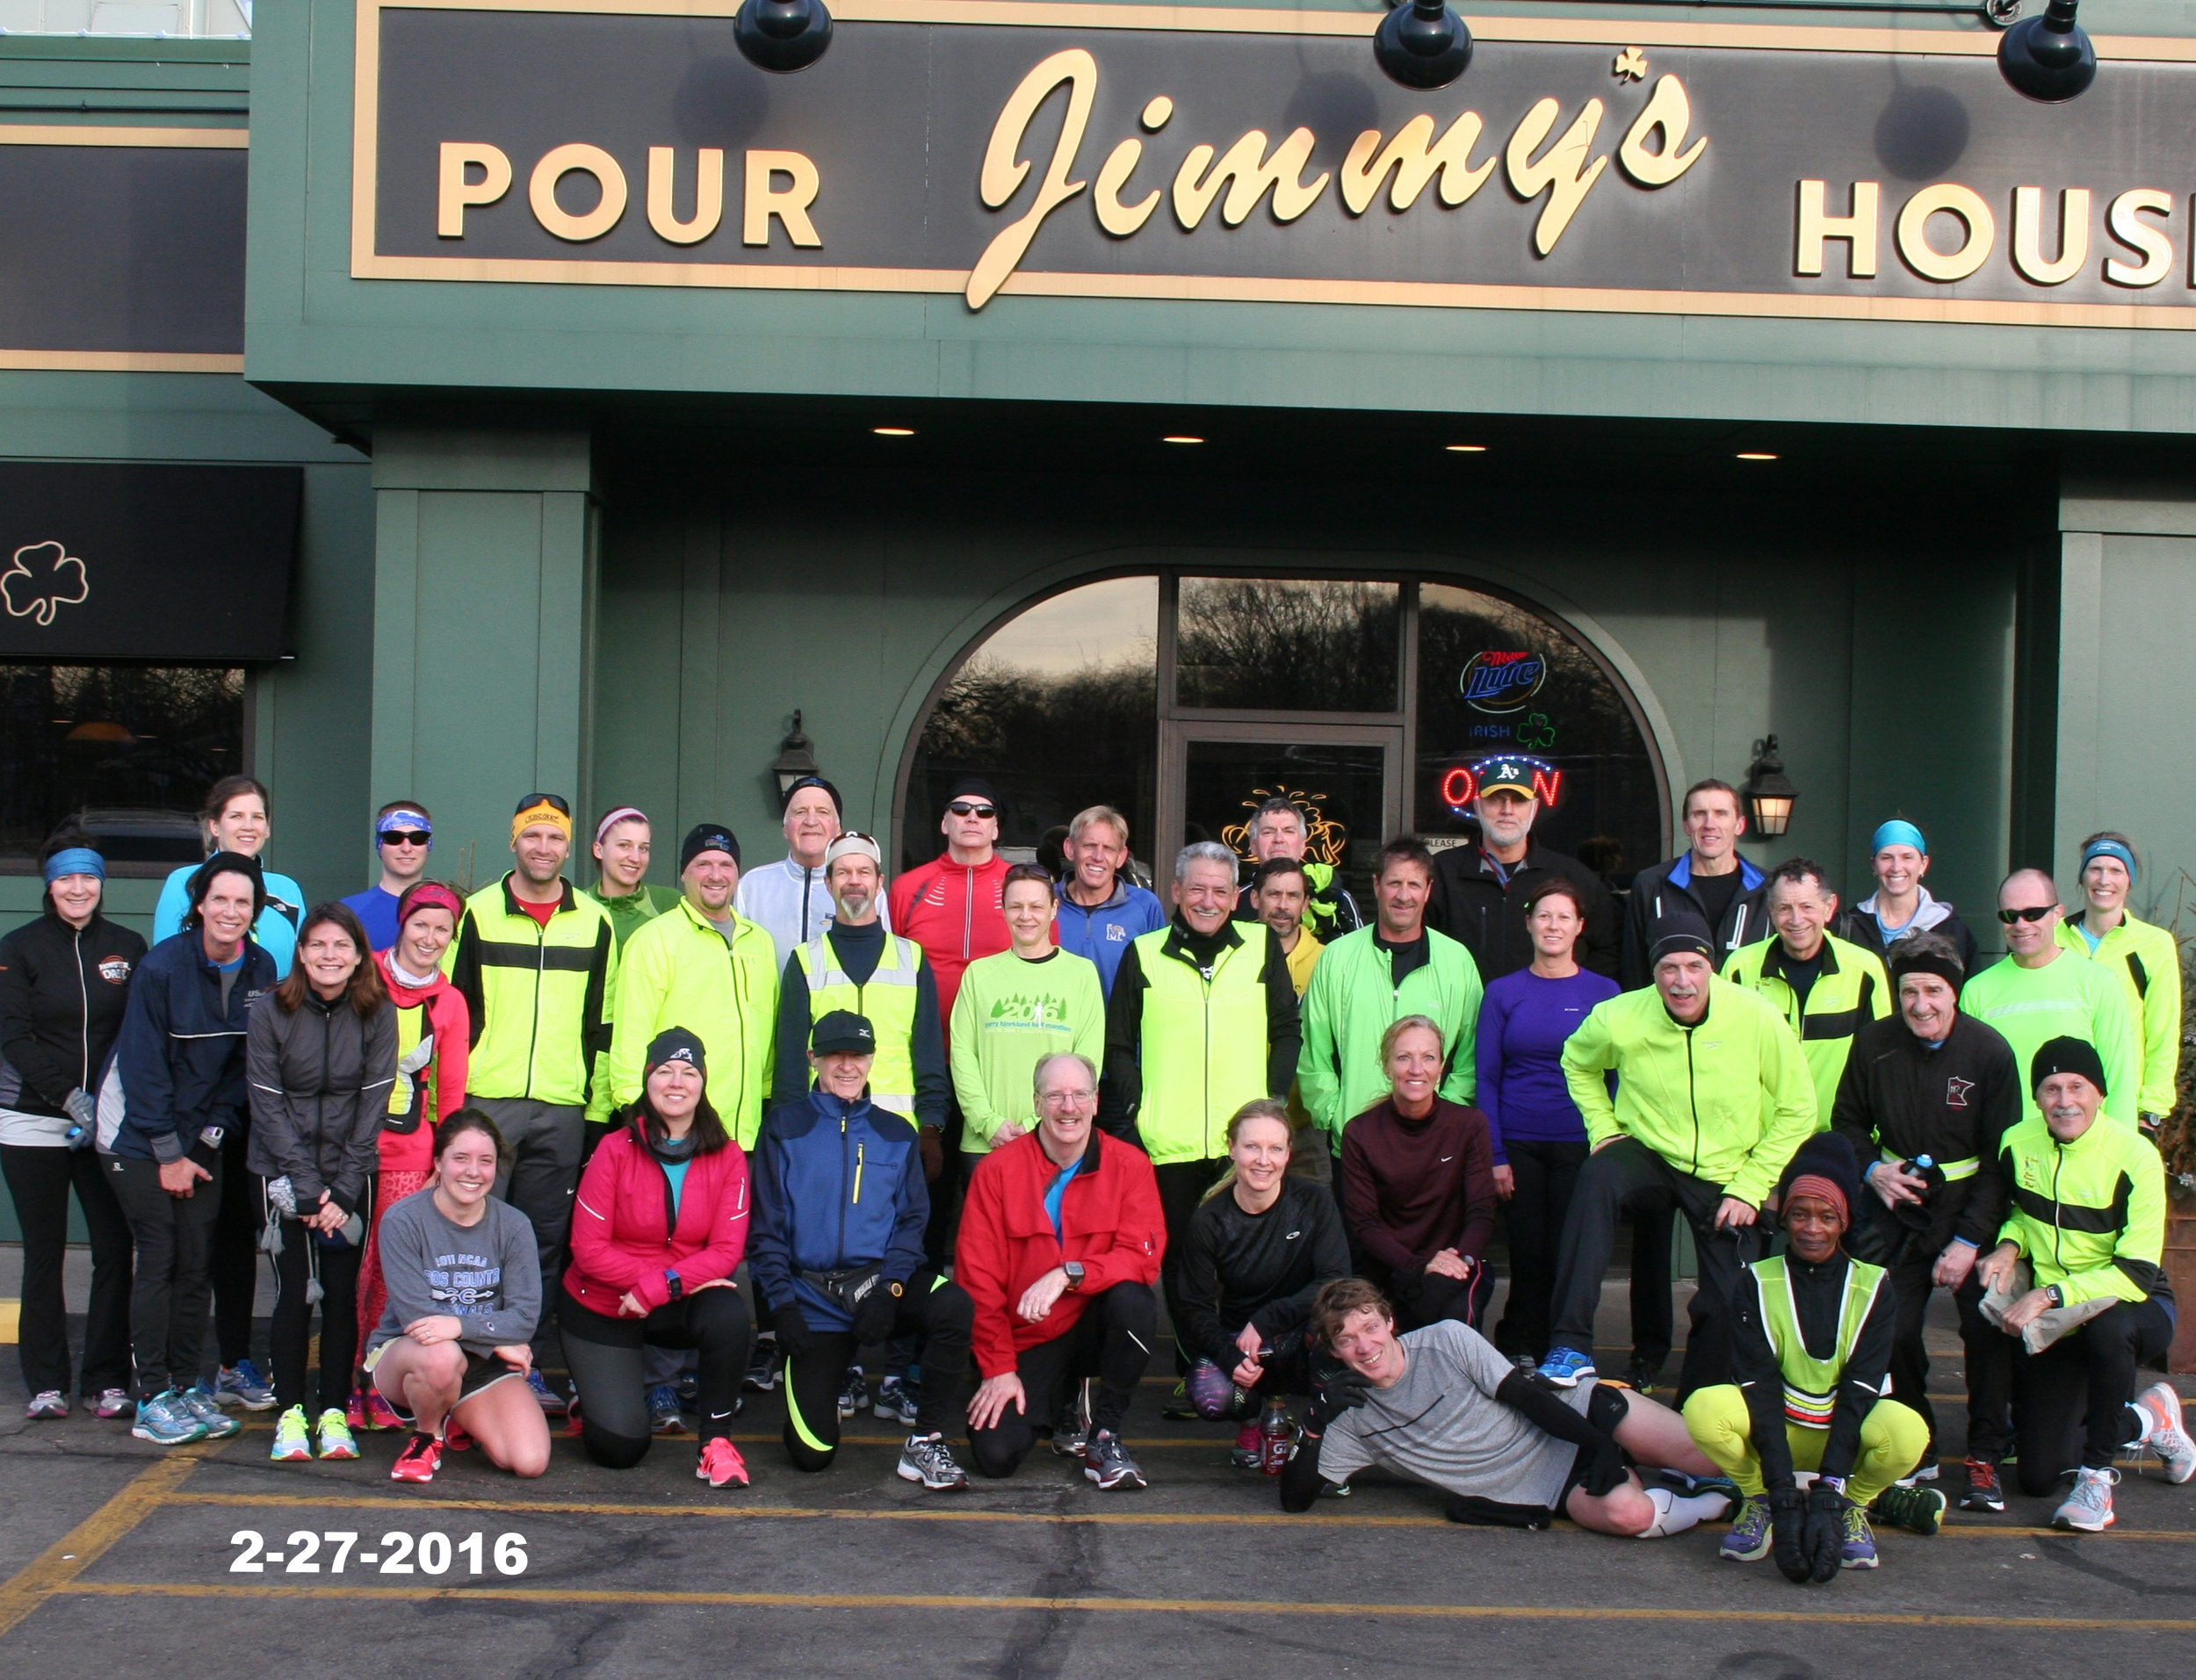 Breakfast Run 2-27-2016